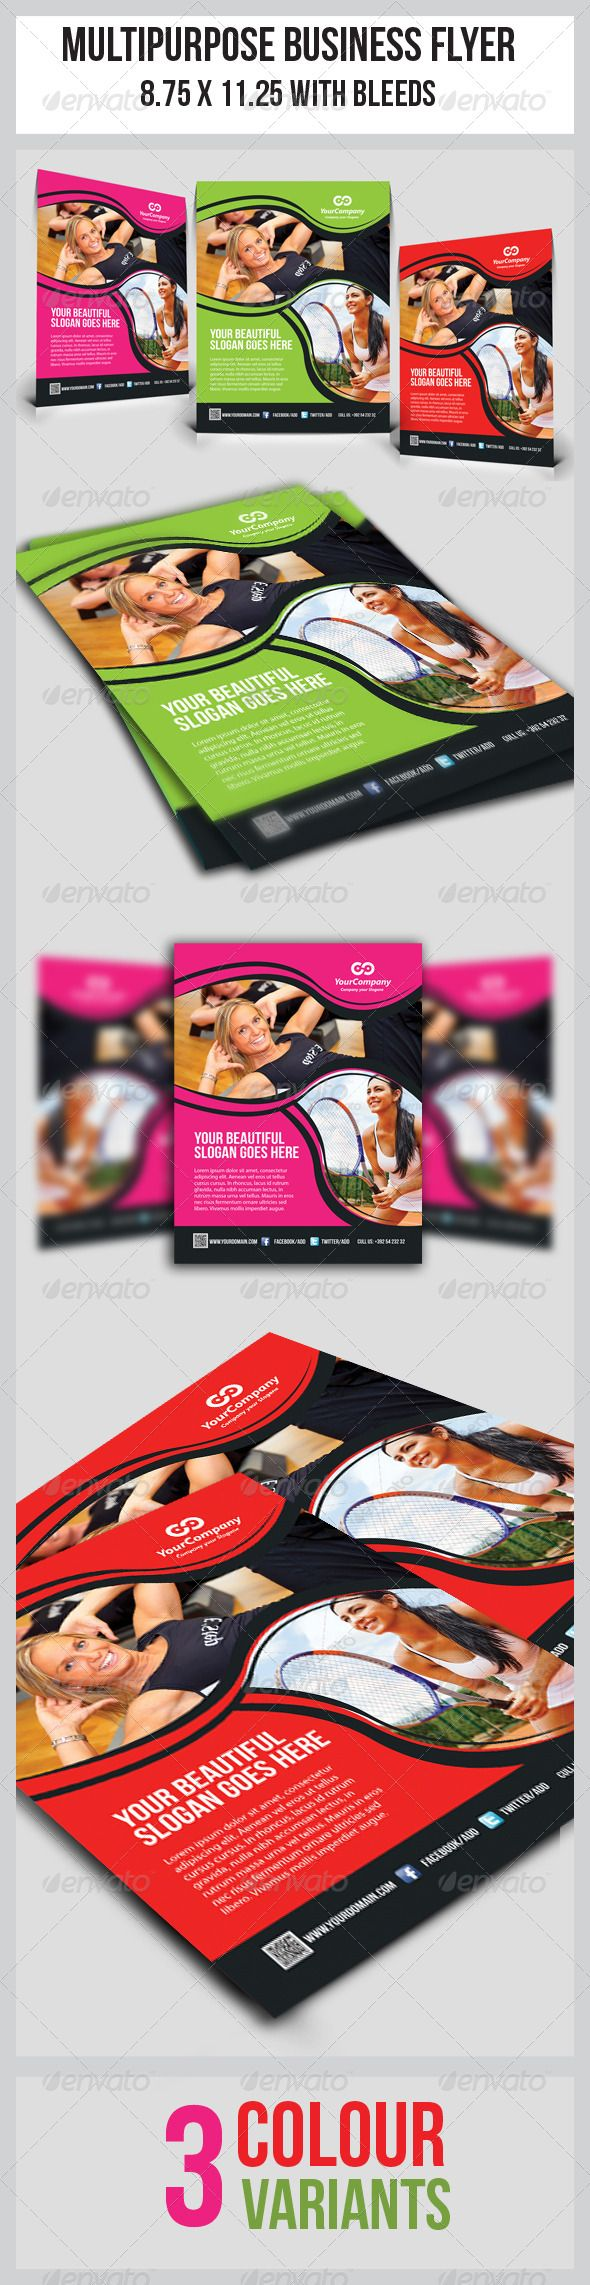 Fitness Flyer Vol.2 | Flyer template, Print templates and Flyer printing